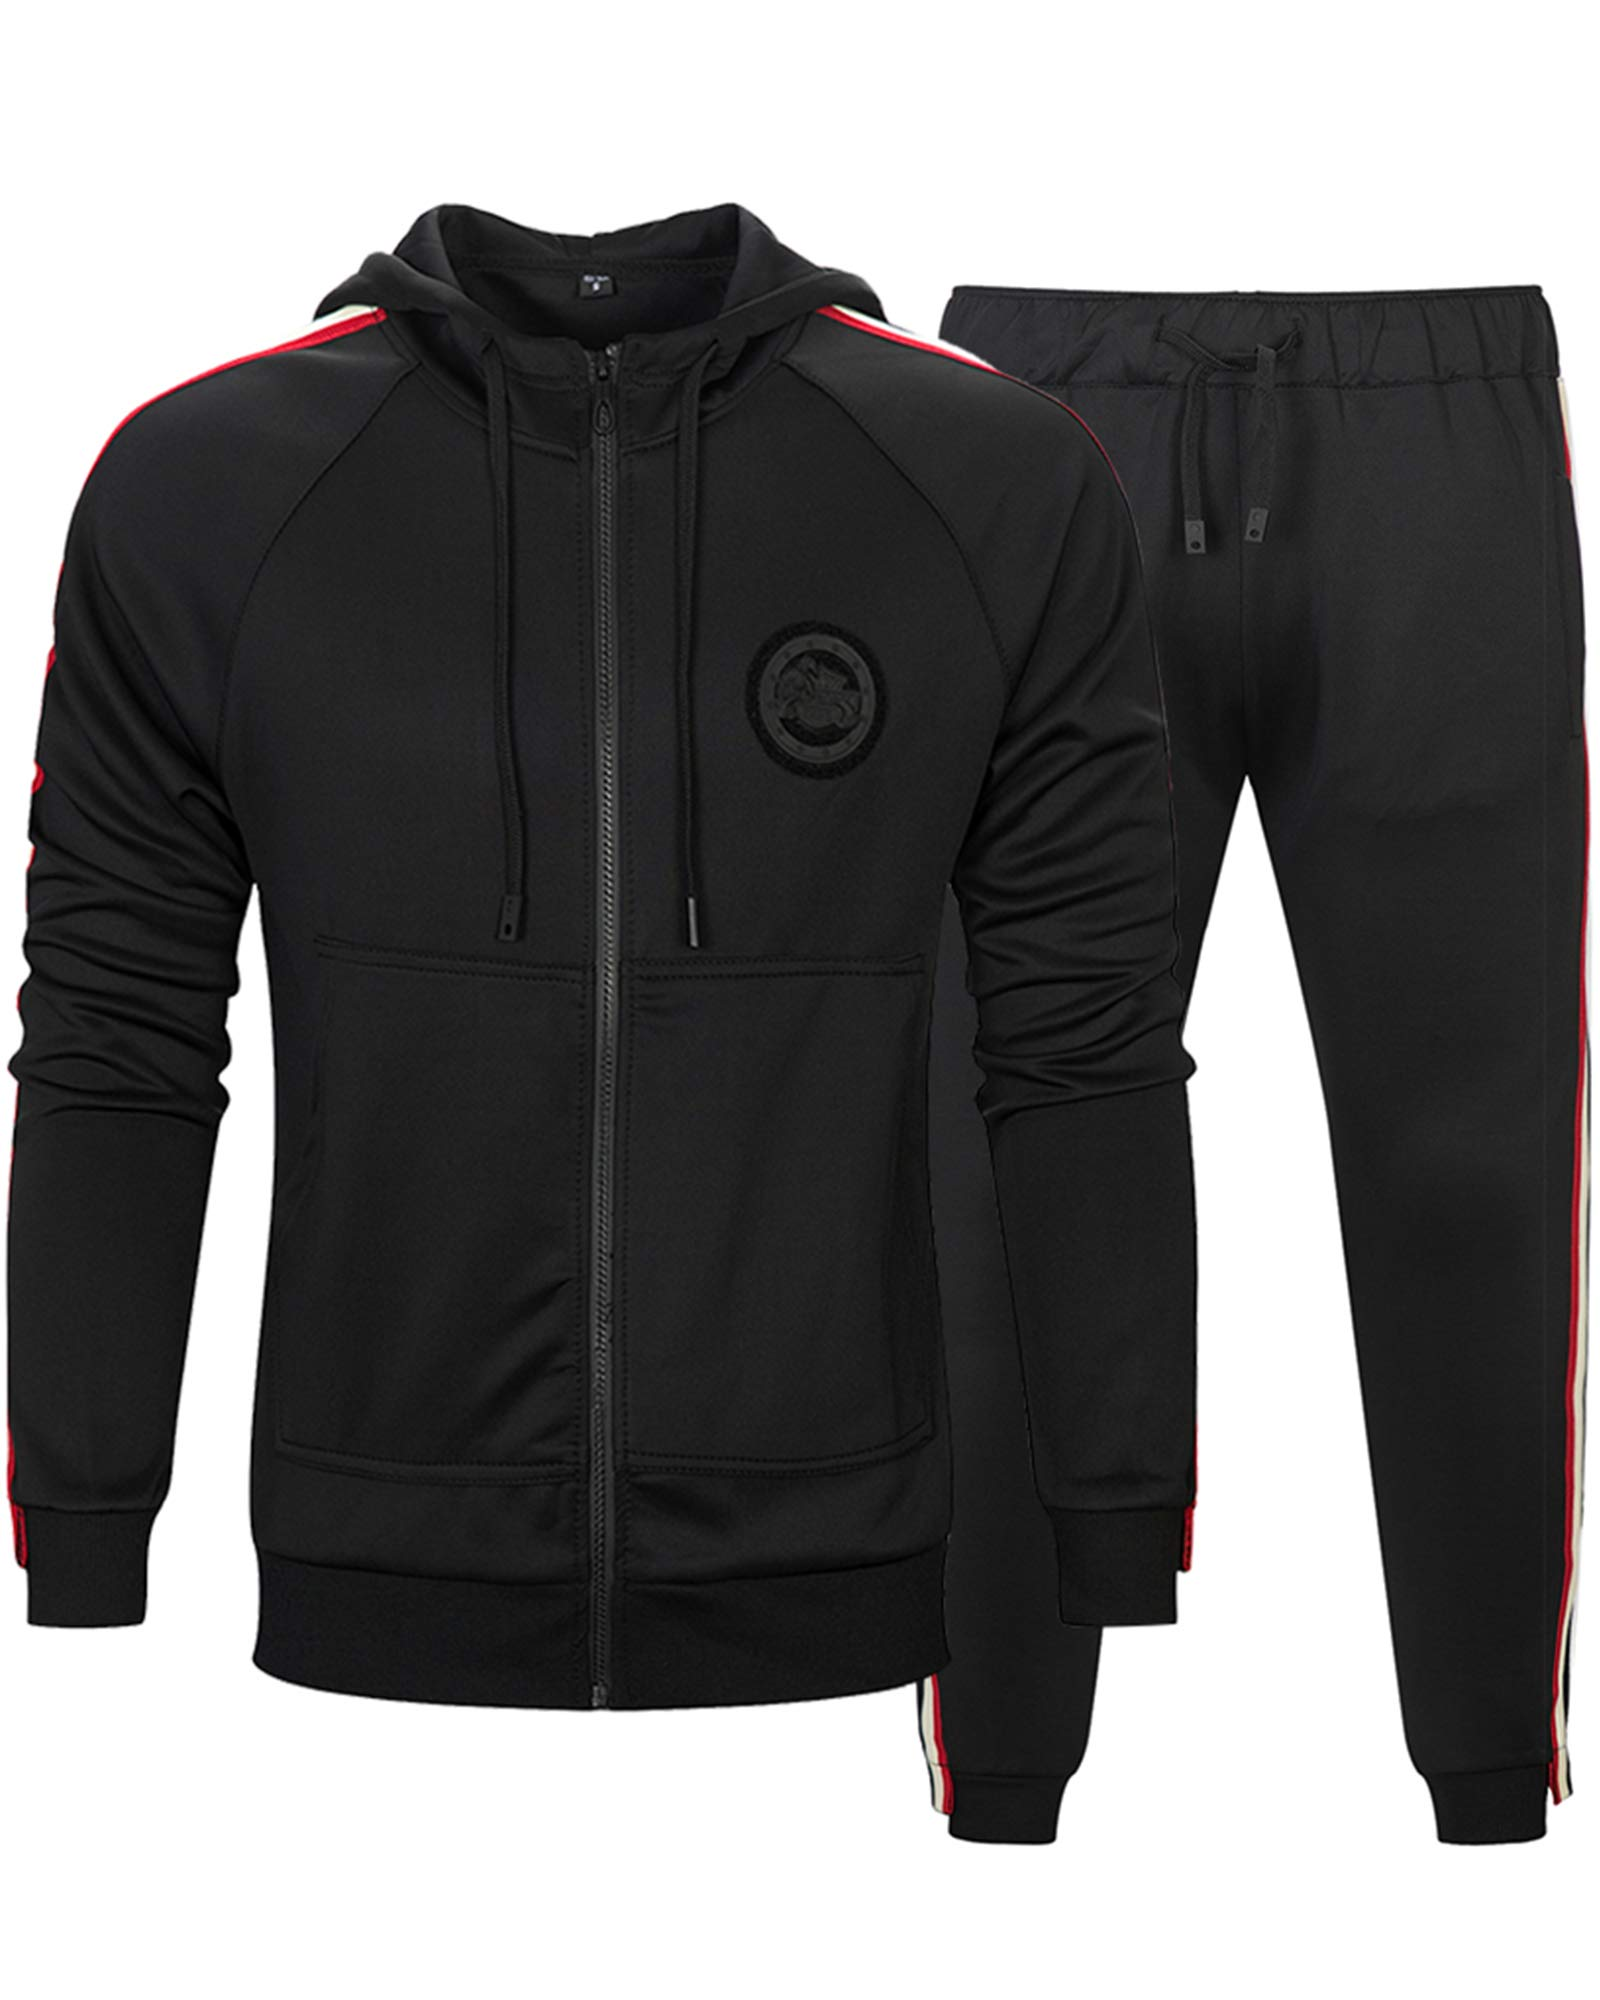 MACHLAB Men's Activewear Sports Jogging Sweat Suits Running Tracksuit